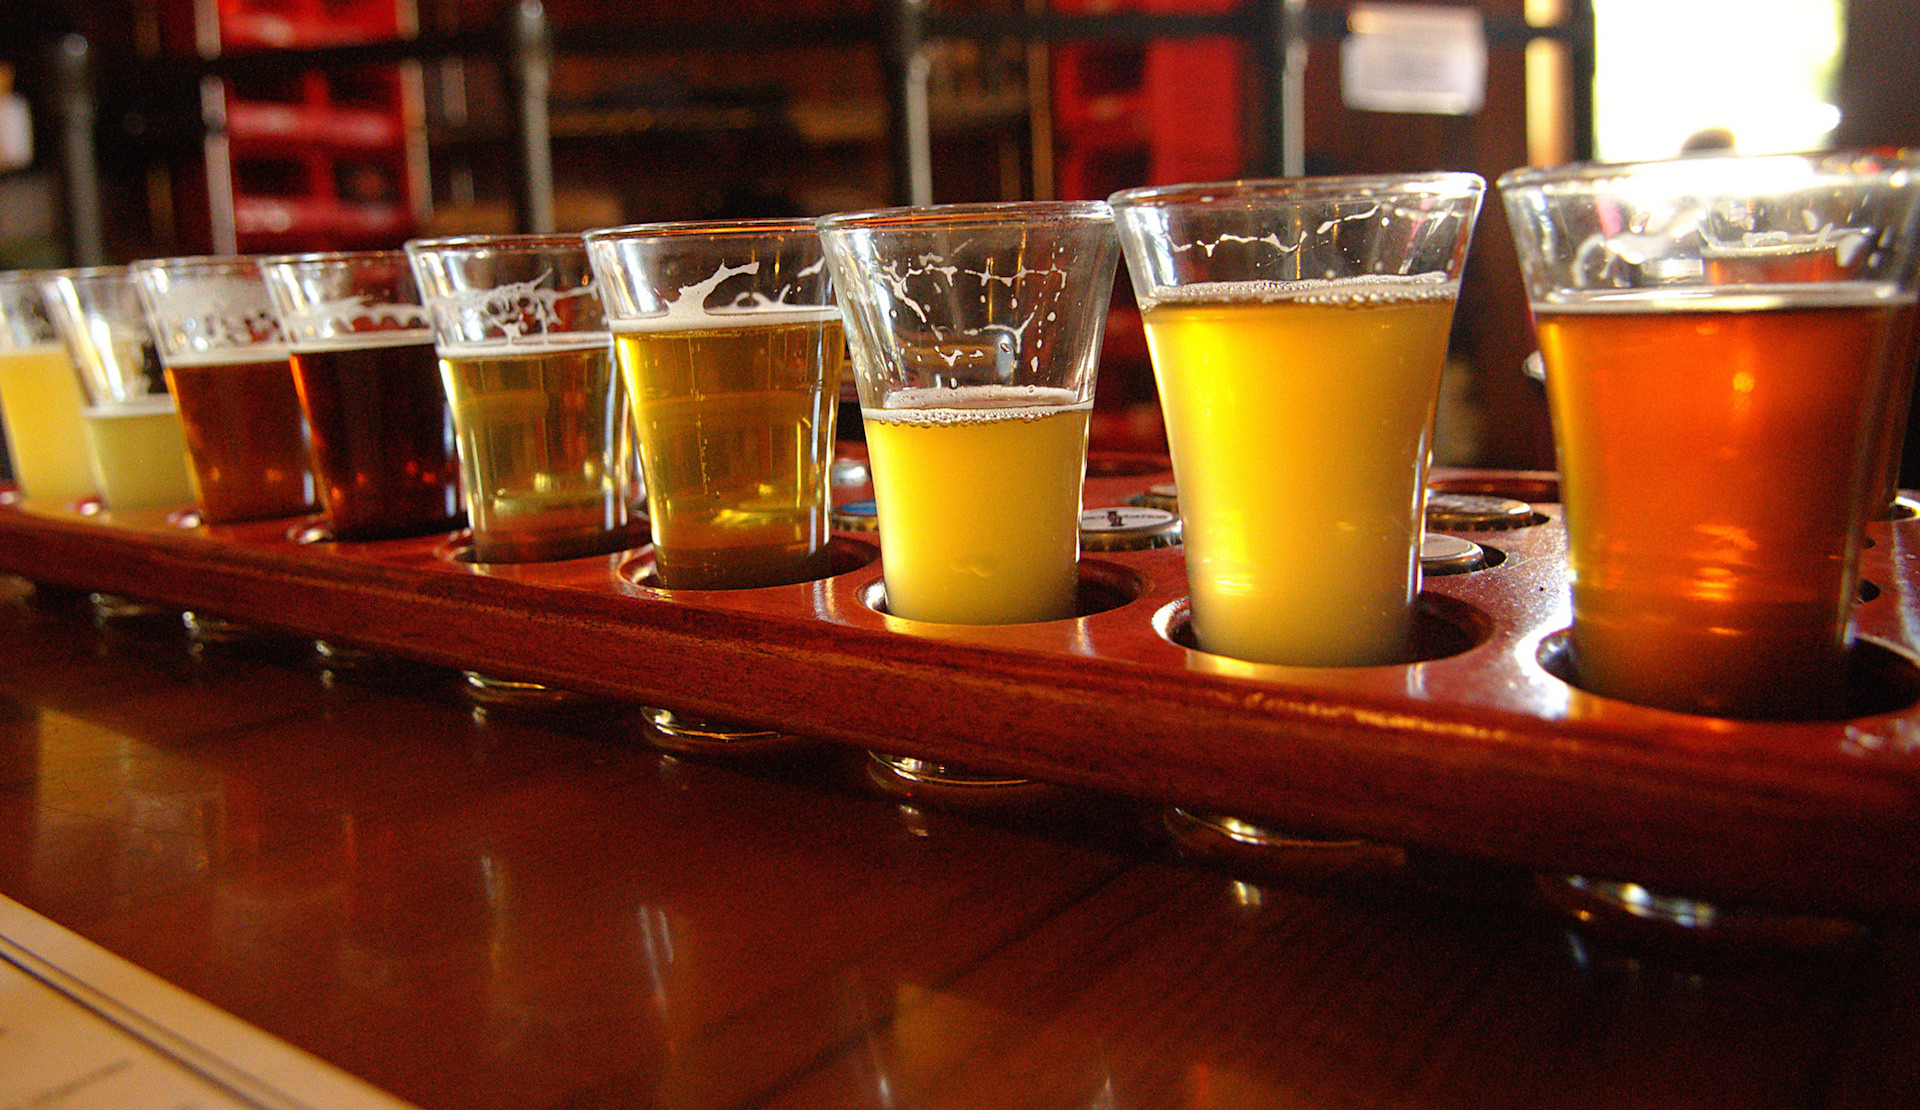 Russian River Brewing tasting sampler